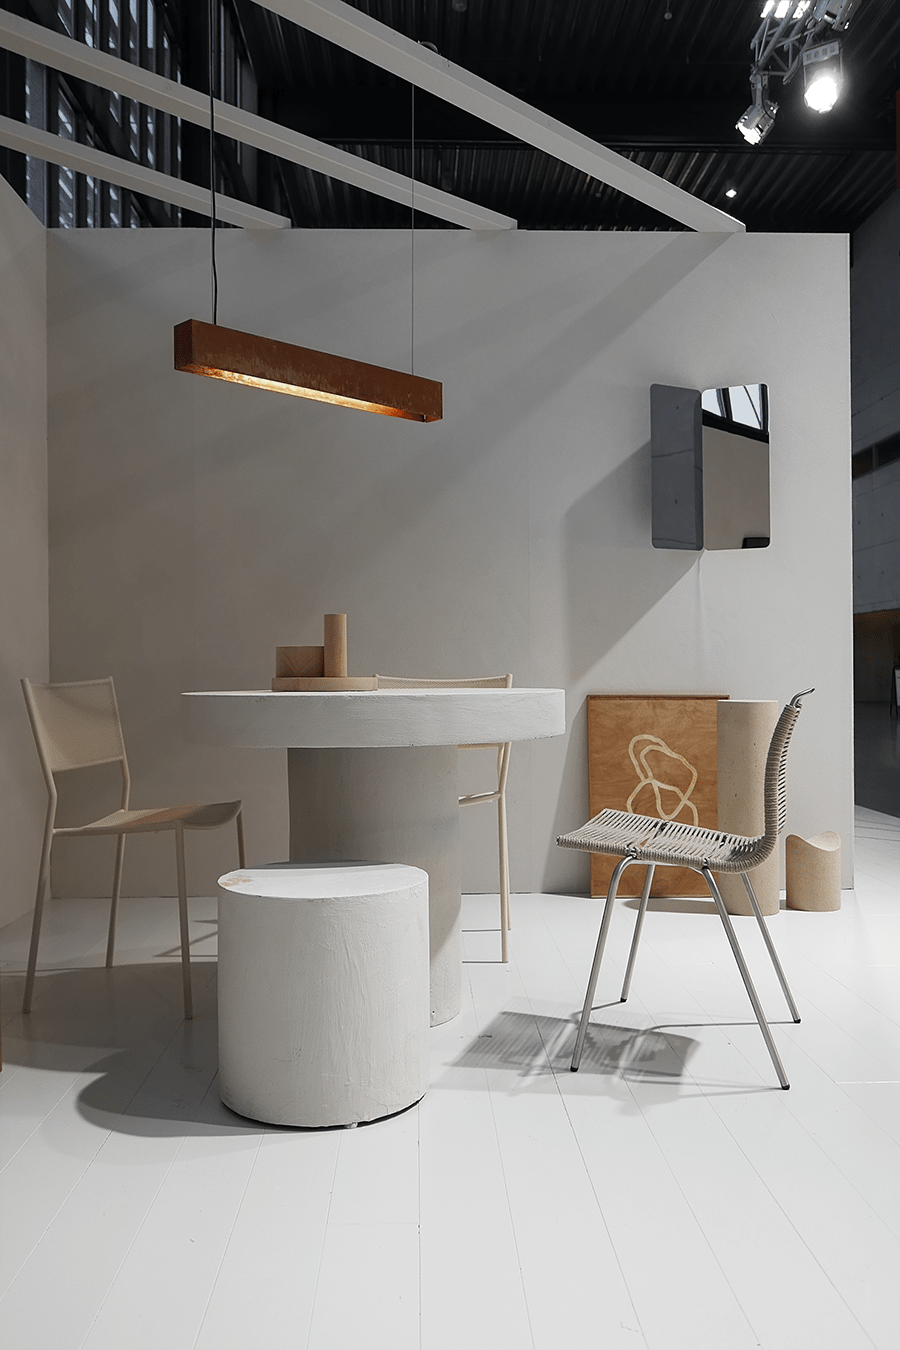 Lovely Oslo Design Fair Has Been On This Week And Its Always Exciting To Hear What  The Experts Has To Say About Ongoing Trends And Tendencies U2013 And To See How  They ...